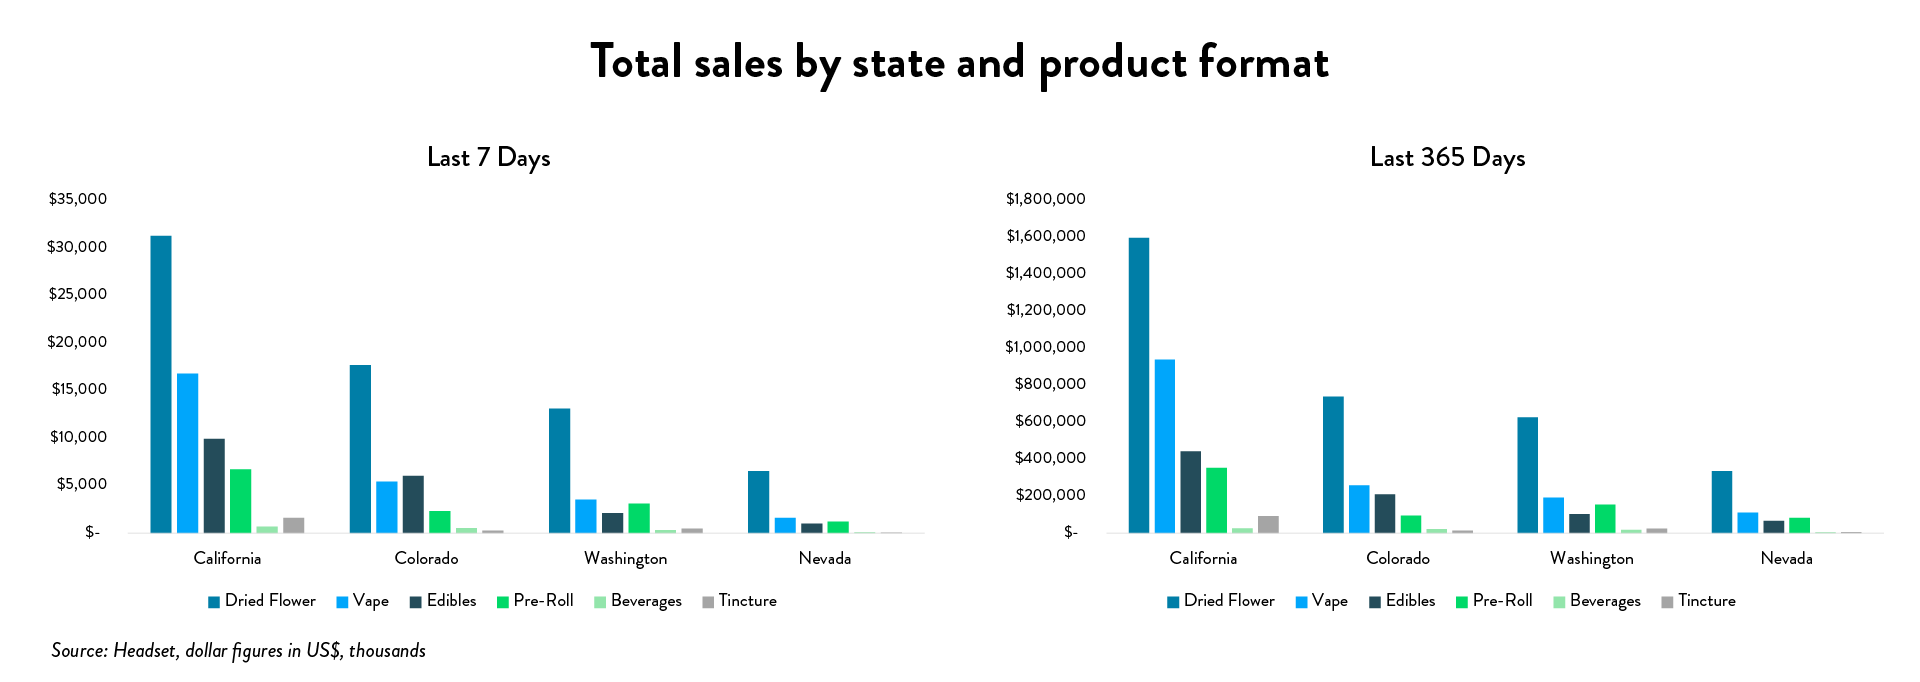 Cannabis 2020 stats: total sales by state and product format (Source: Headset)